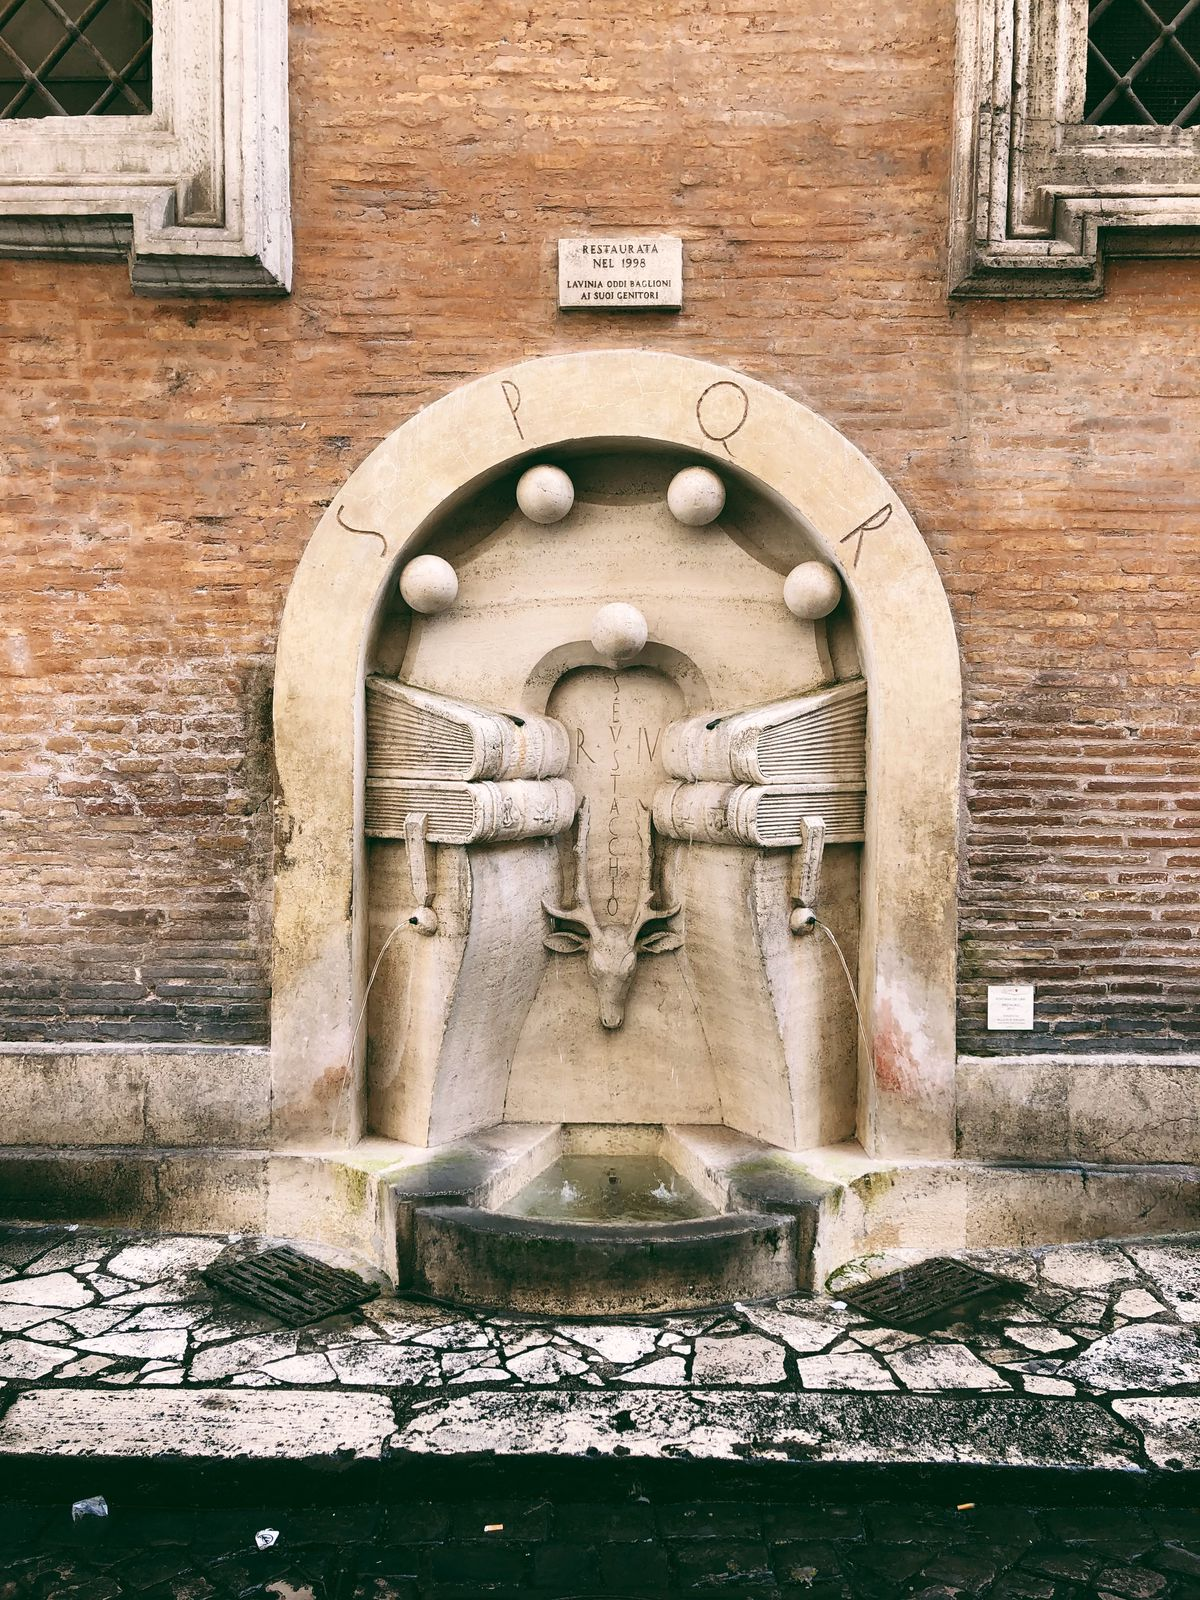 A fountain with an arched detailing against a brick wall.